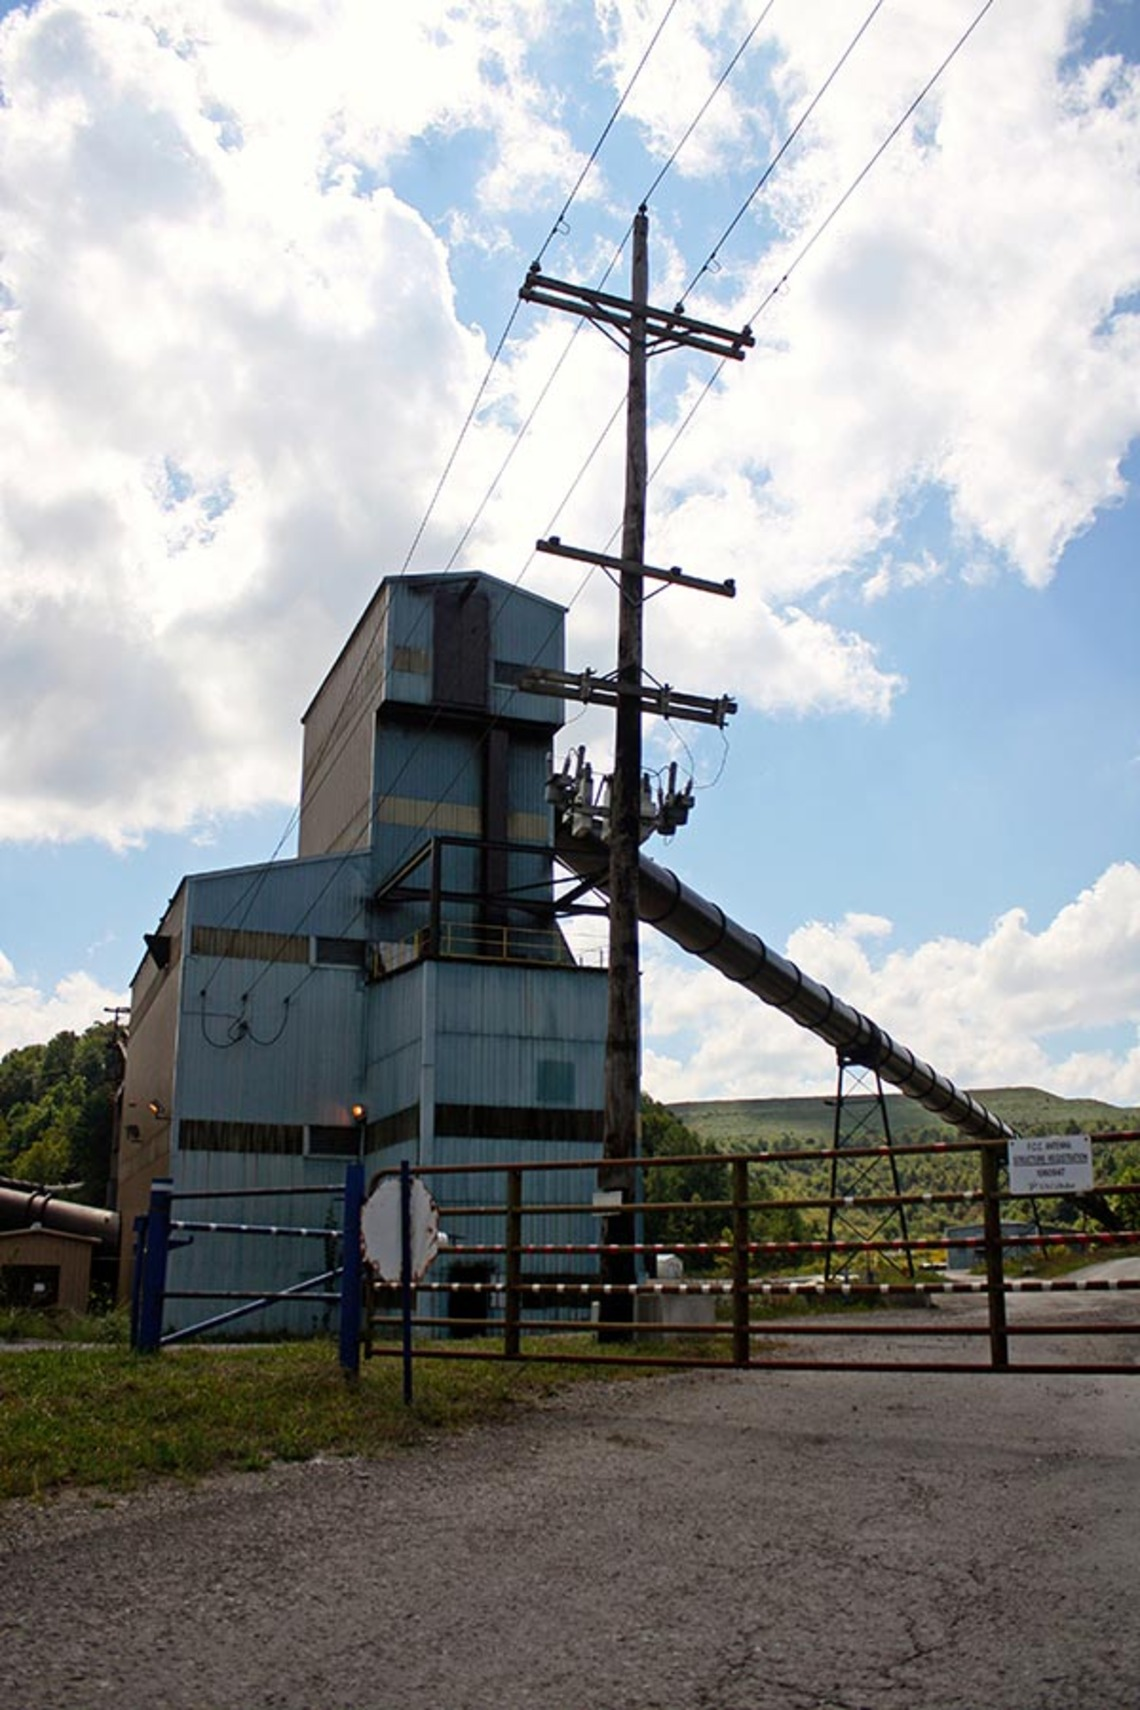 The site of the 2006 Sago Mine Disaster, a 30-minute drive from the Smith family home, in Upshur County, W. Va.